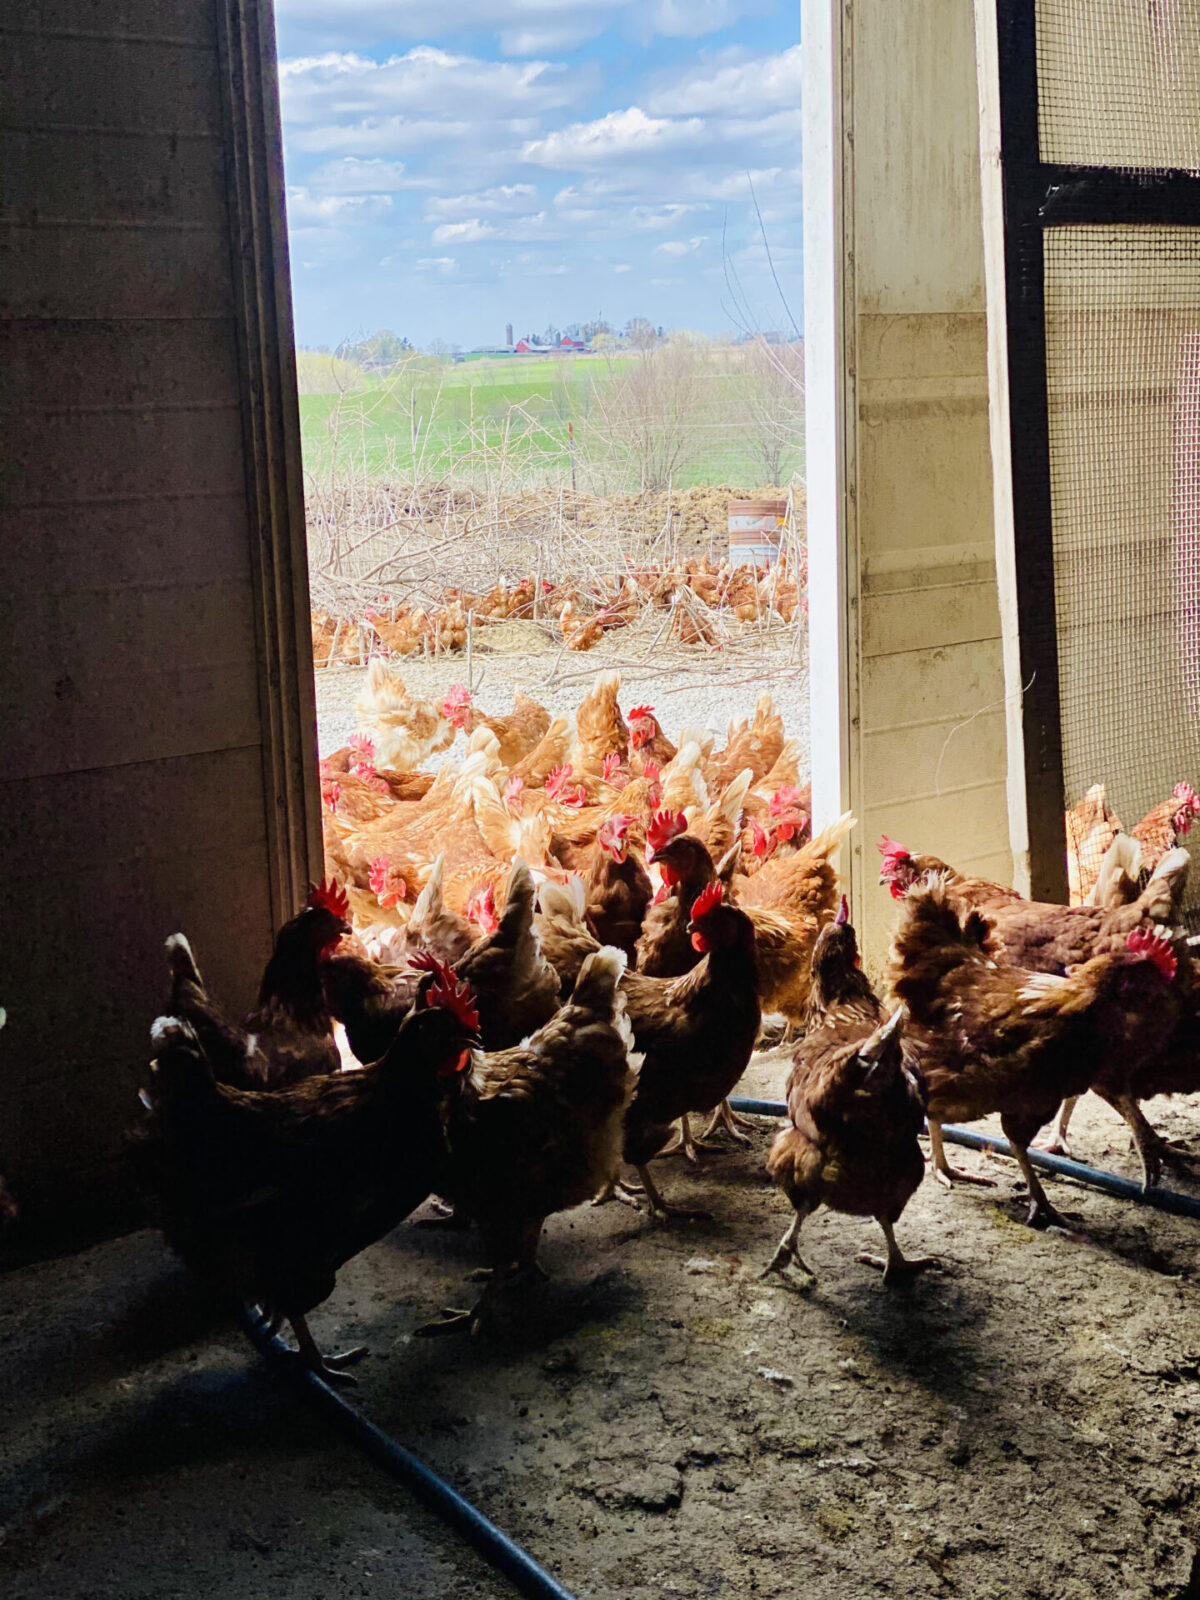 Hens going outside at the Edward M. Farm